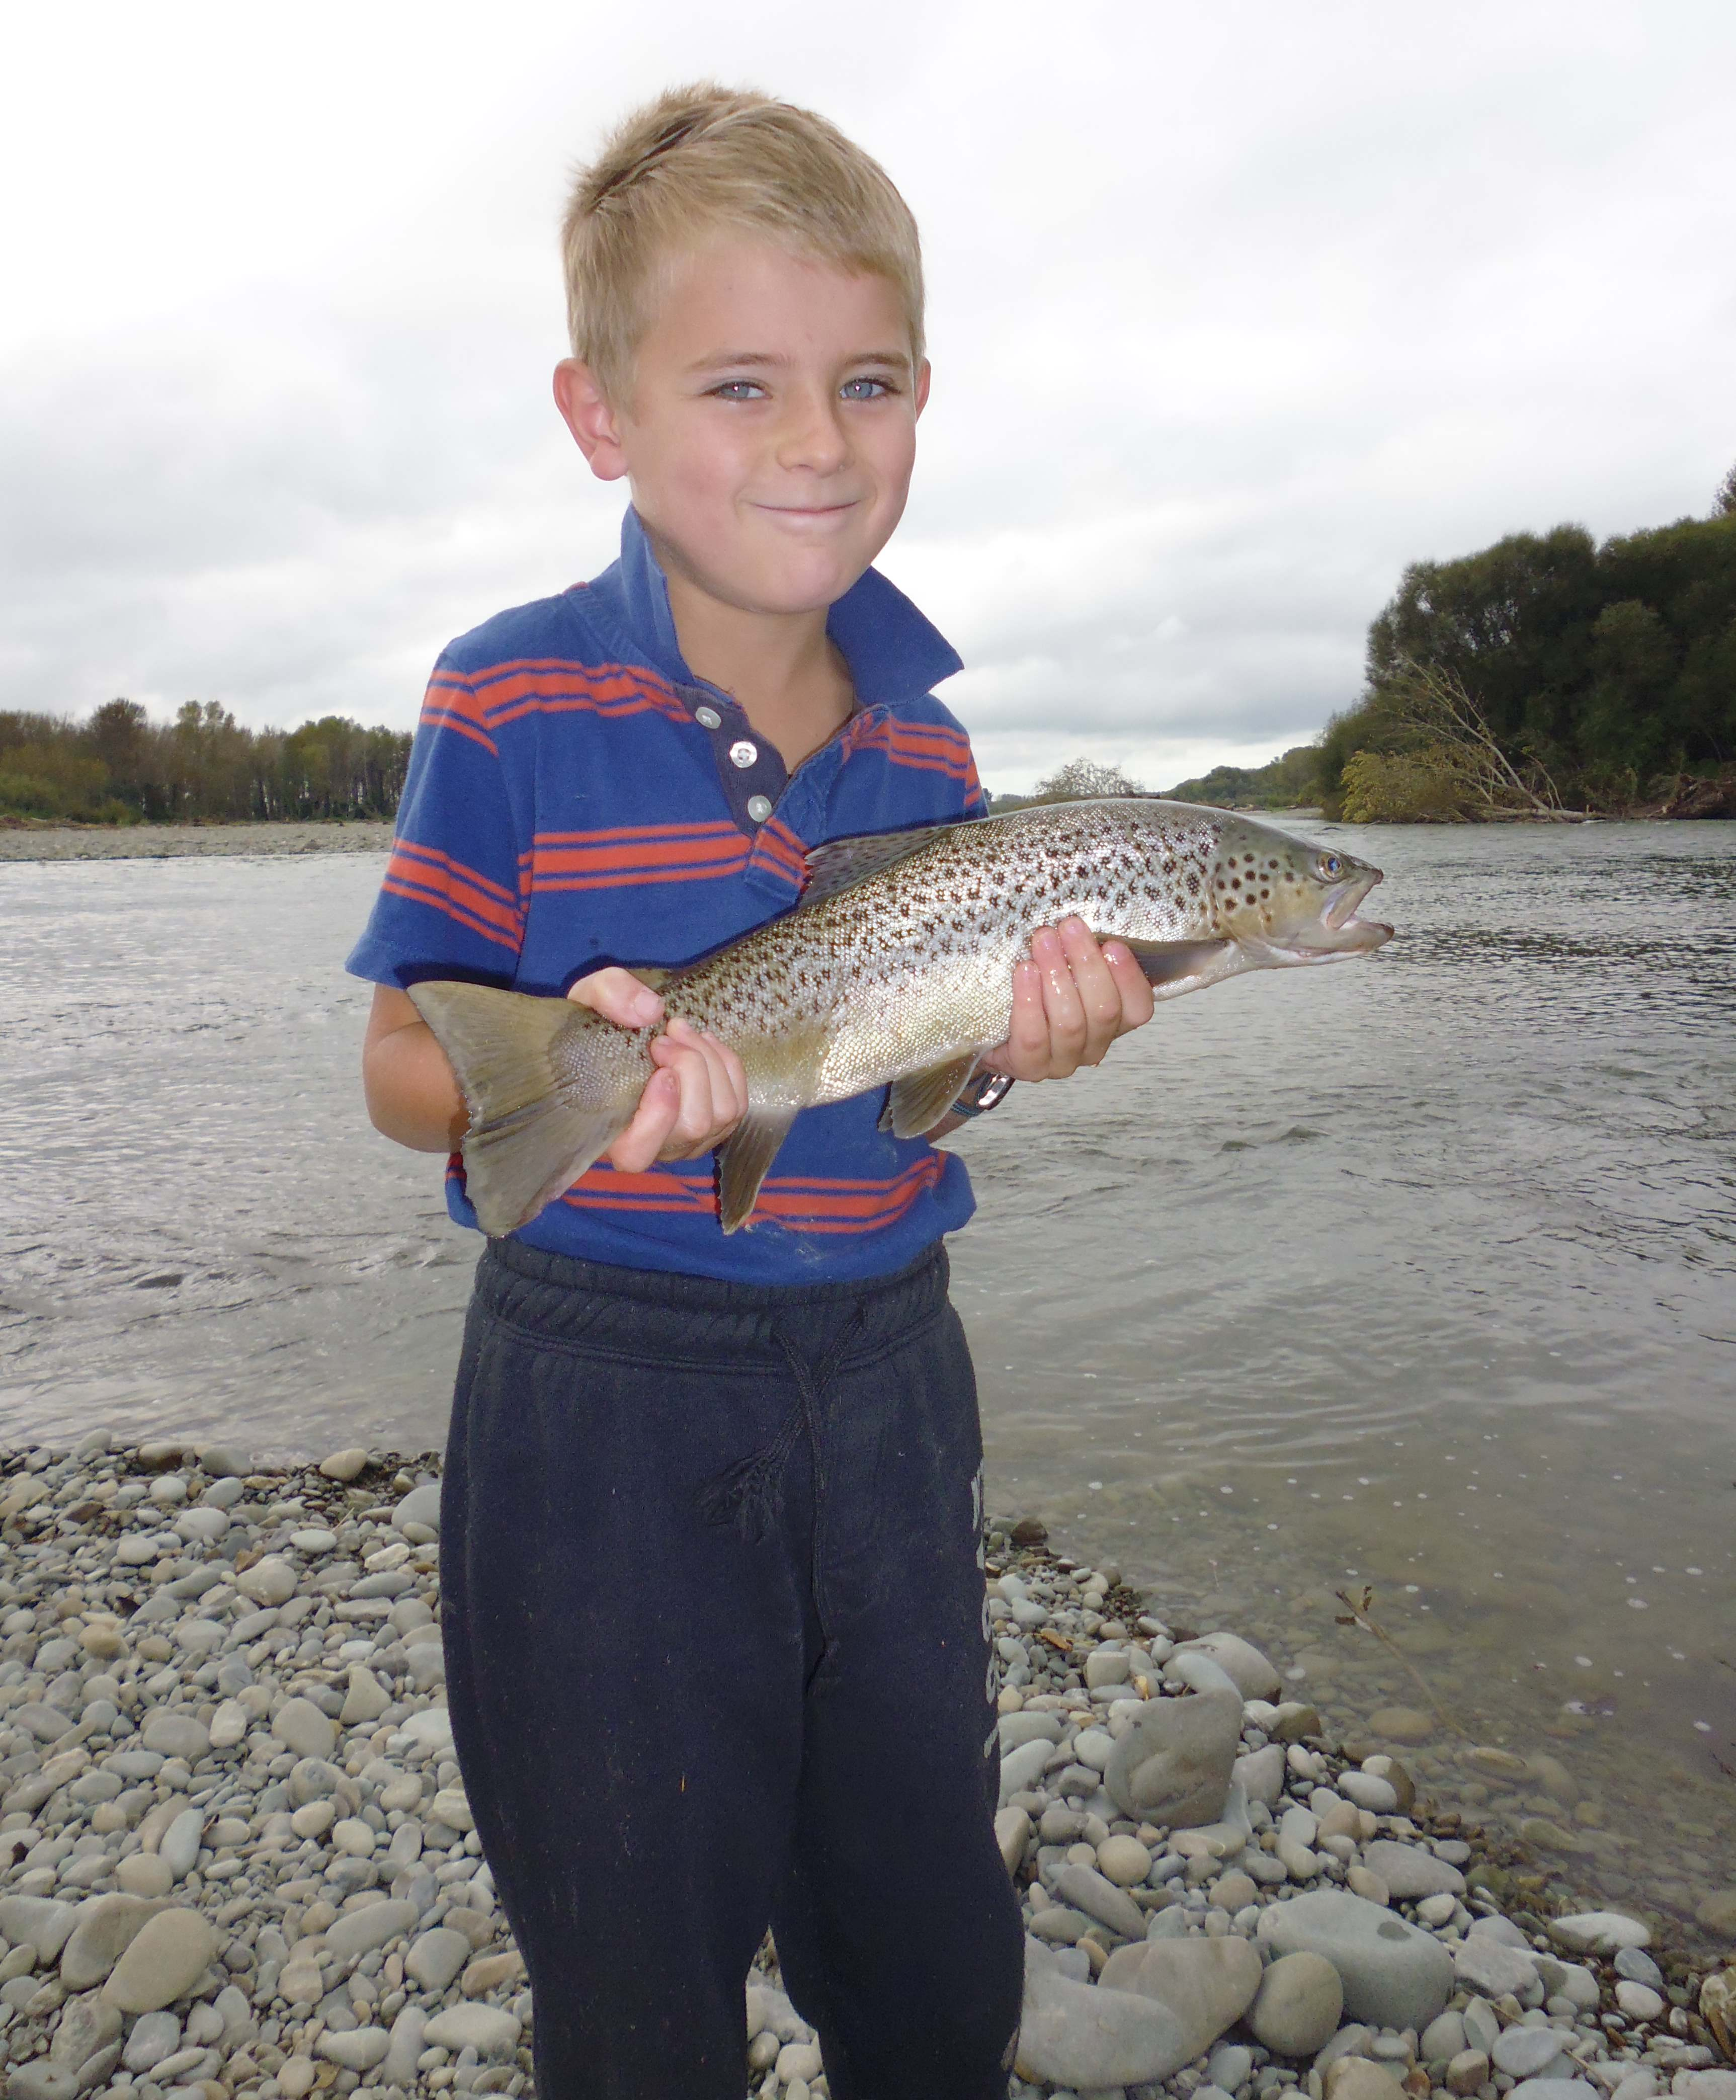 WFR1718.55 Cameron Blogg with his first fish a brown trout from the Opihi River